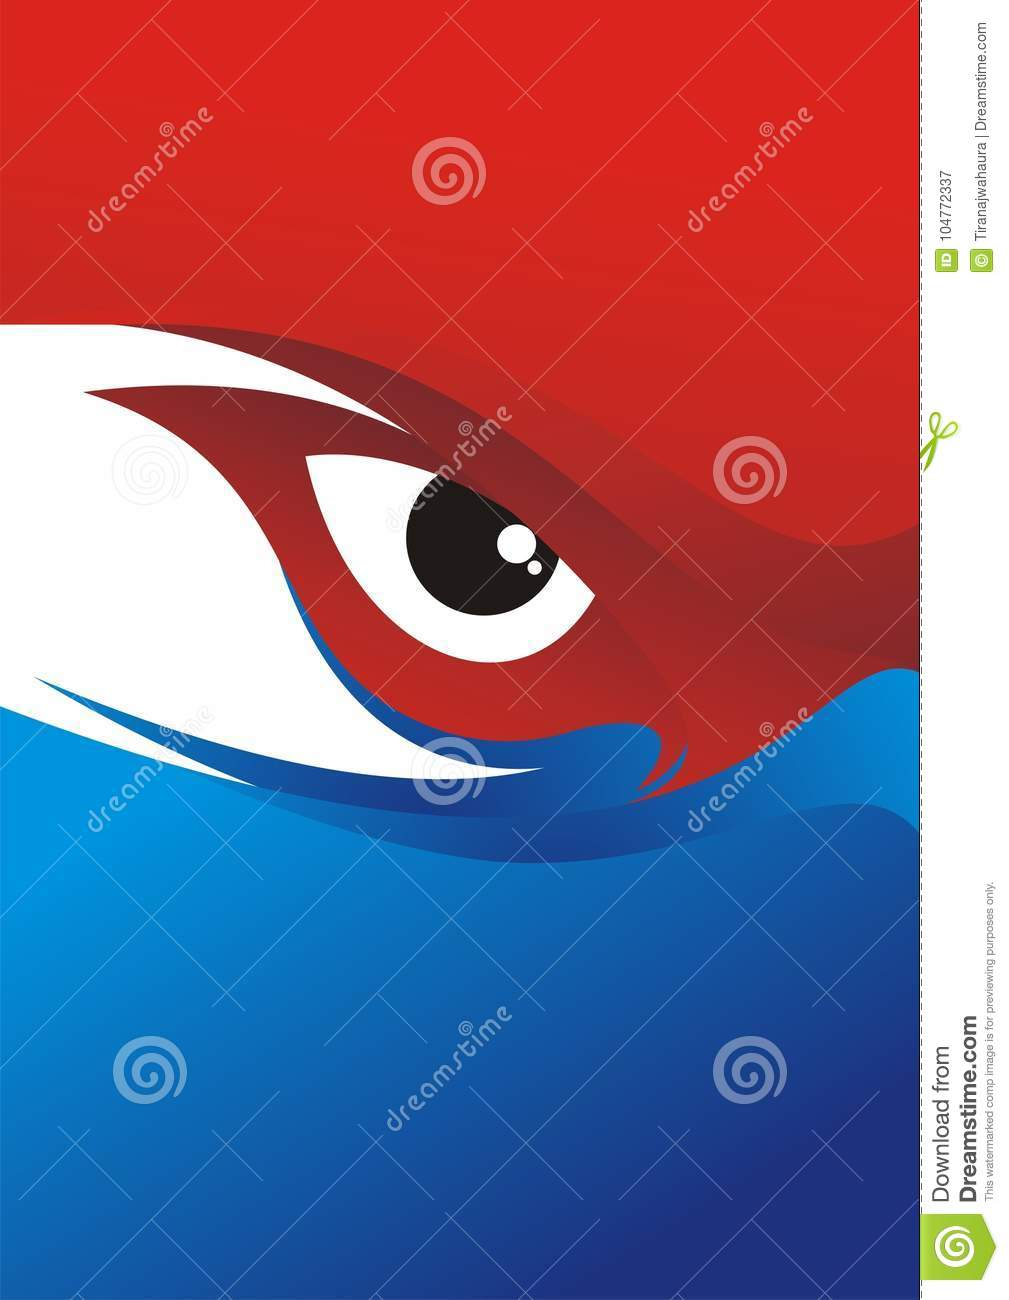 Eye Background With Red - Blue Color Design Stock Vector ...